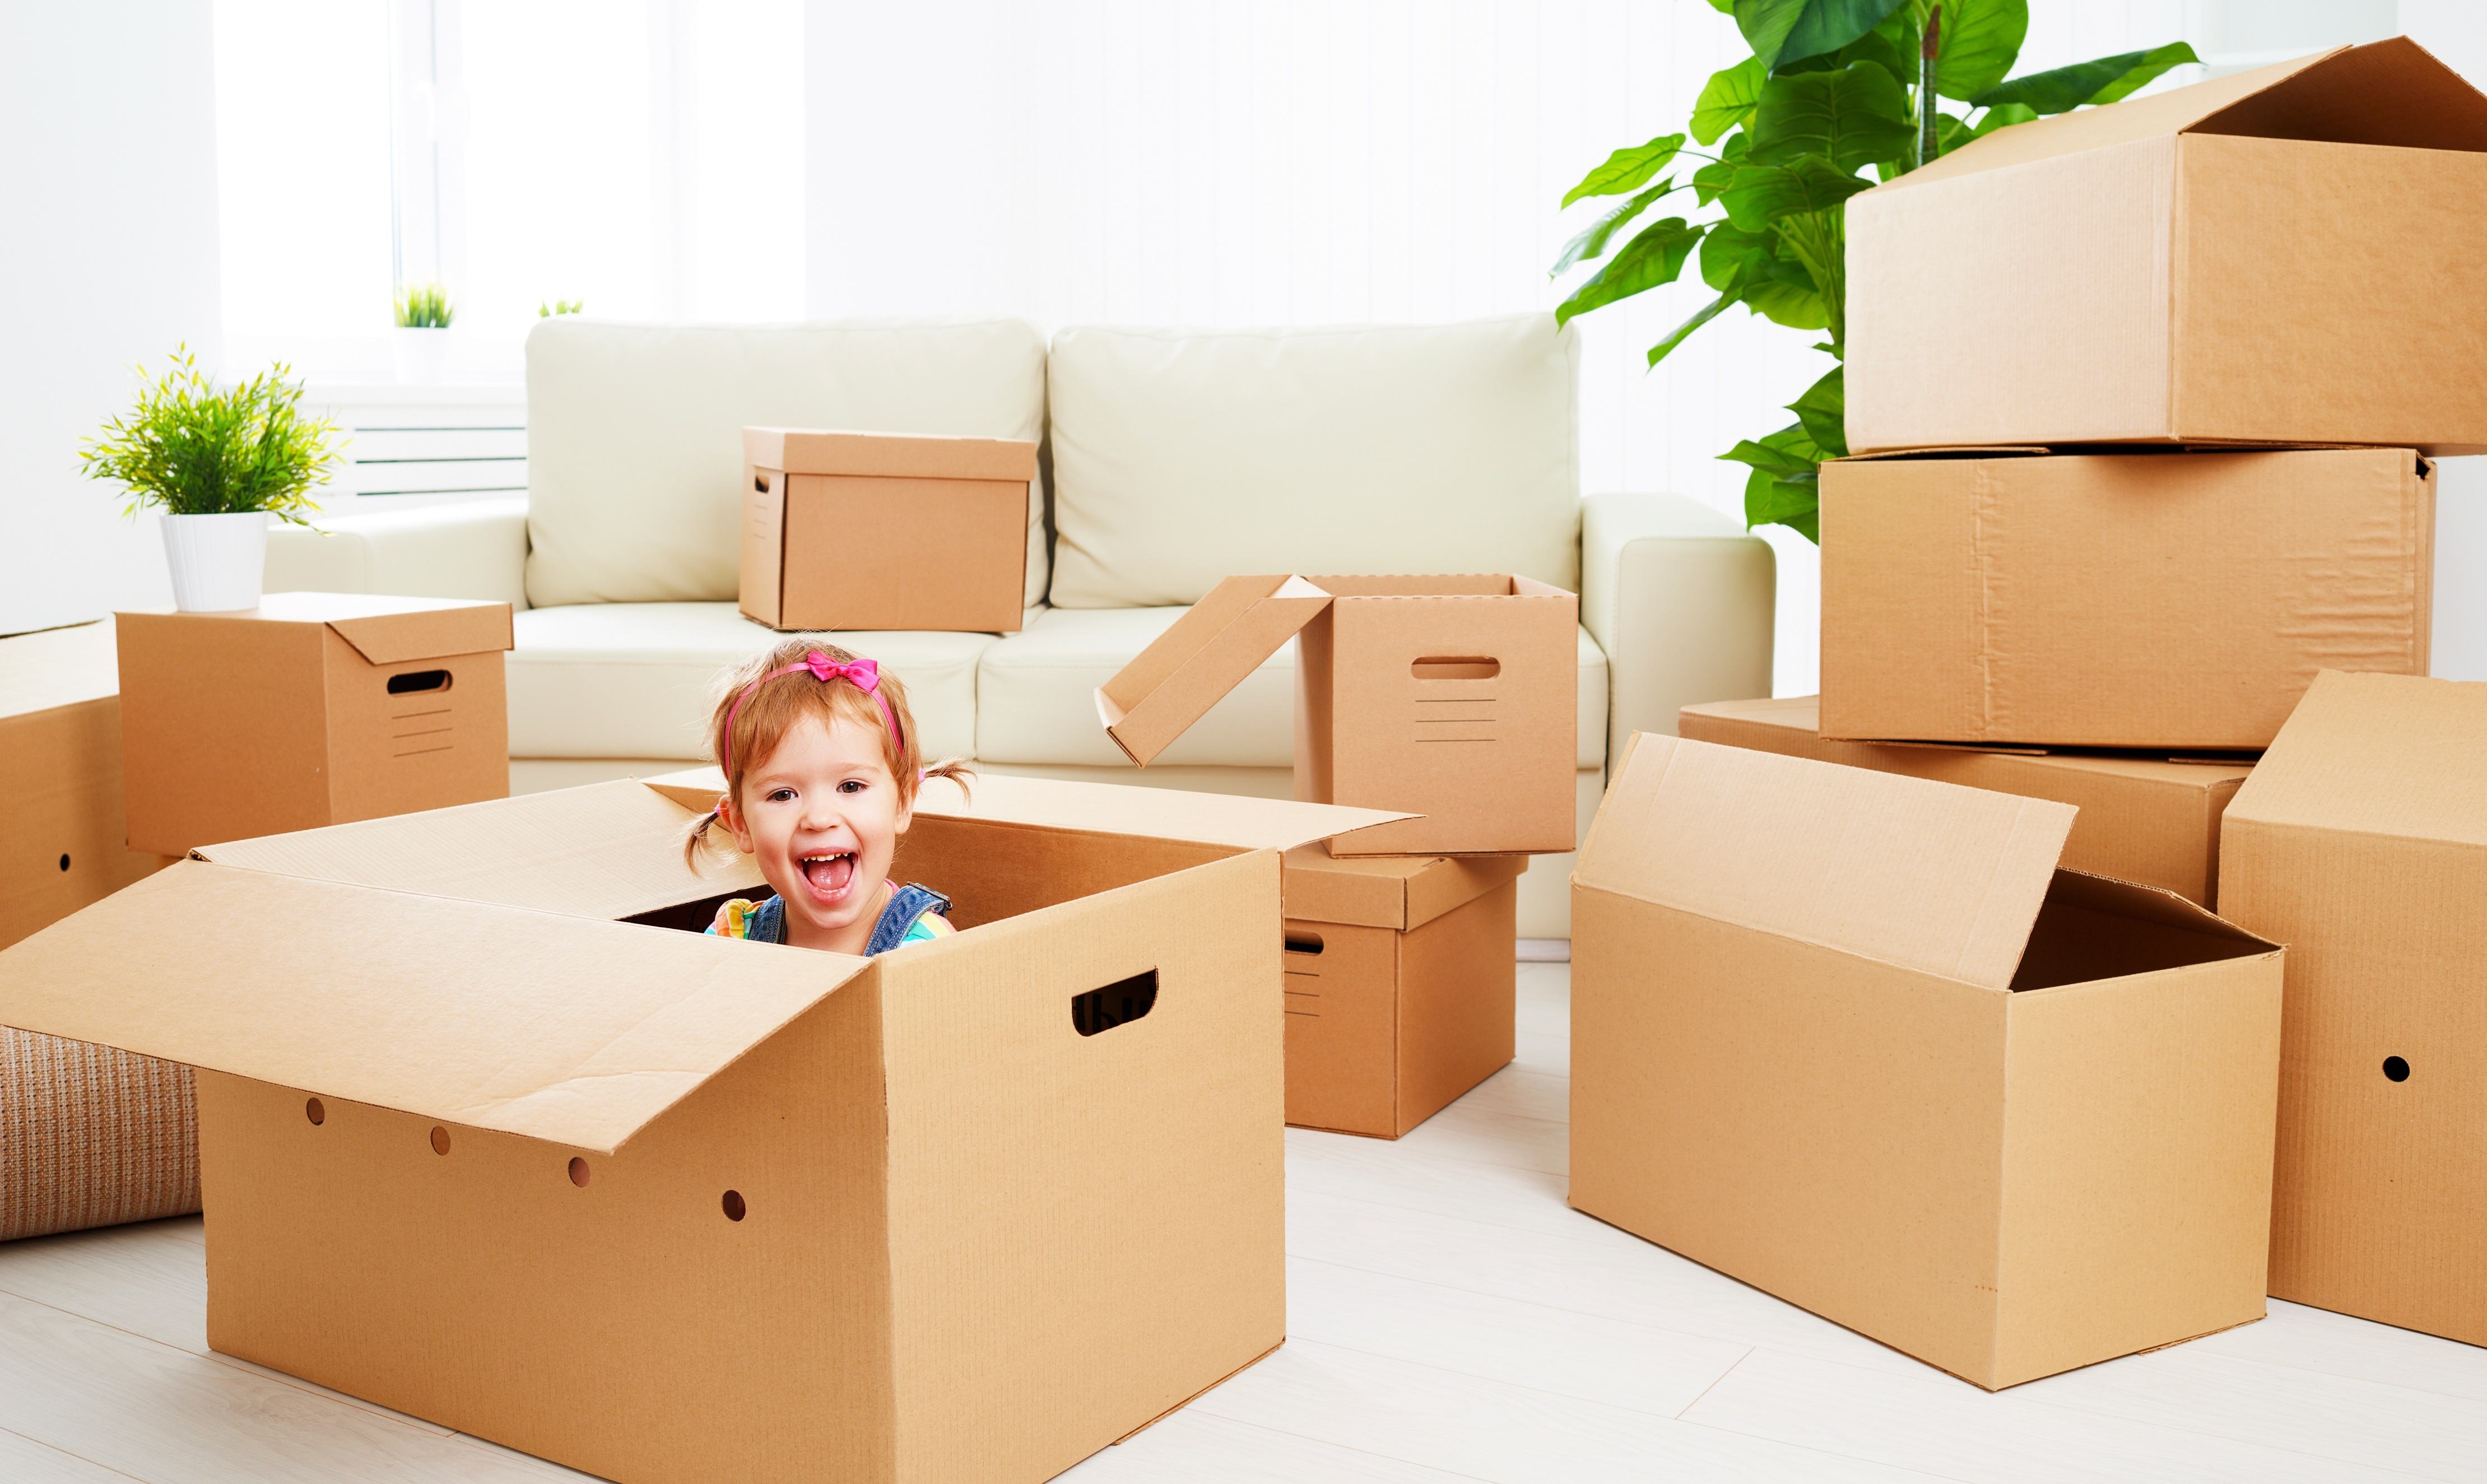 Moving house? We've got some handy hints!